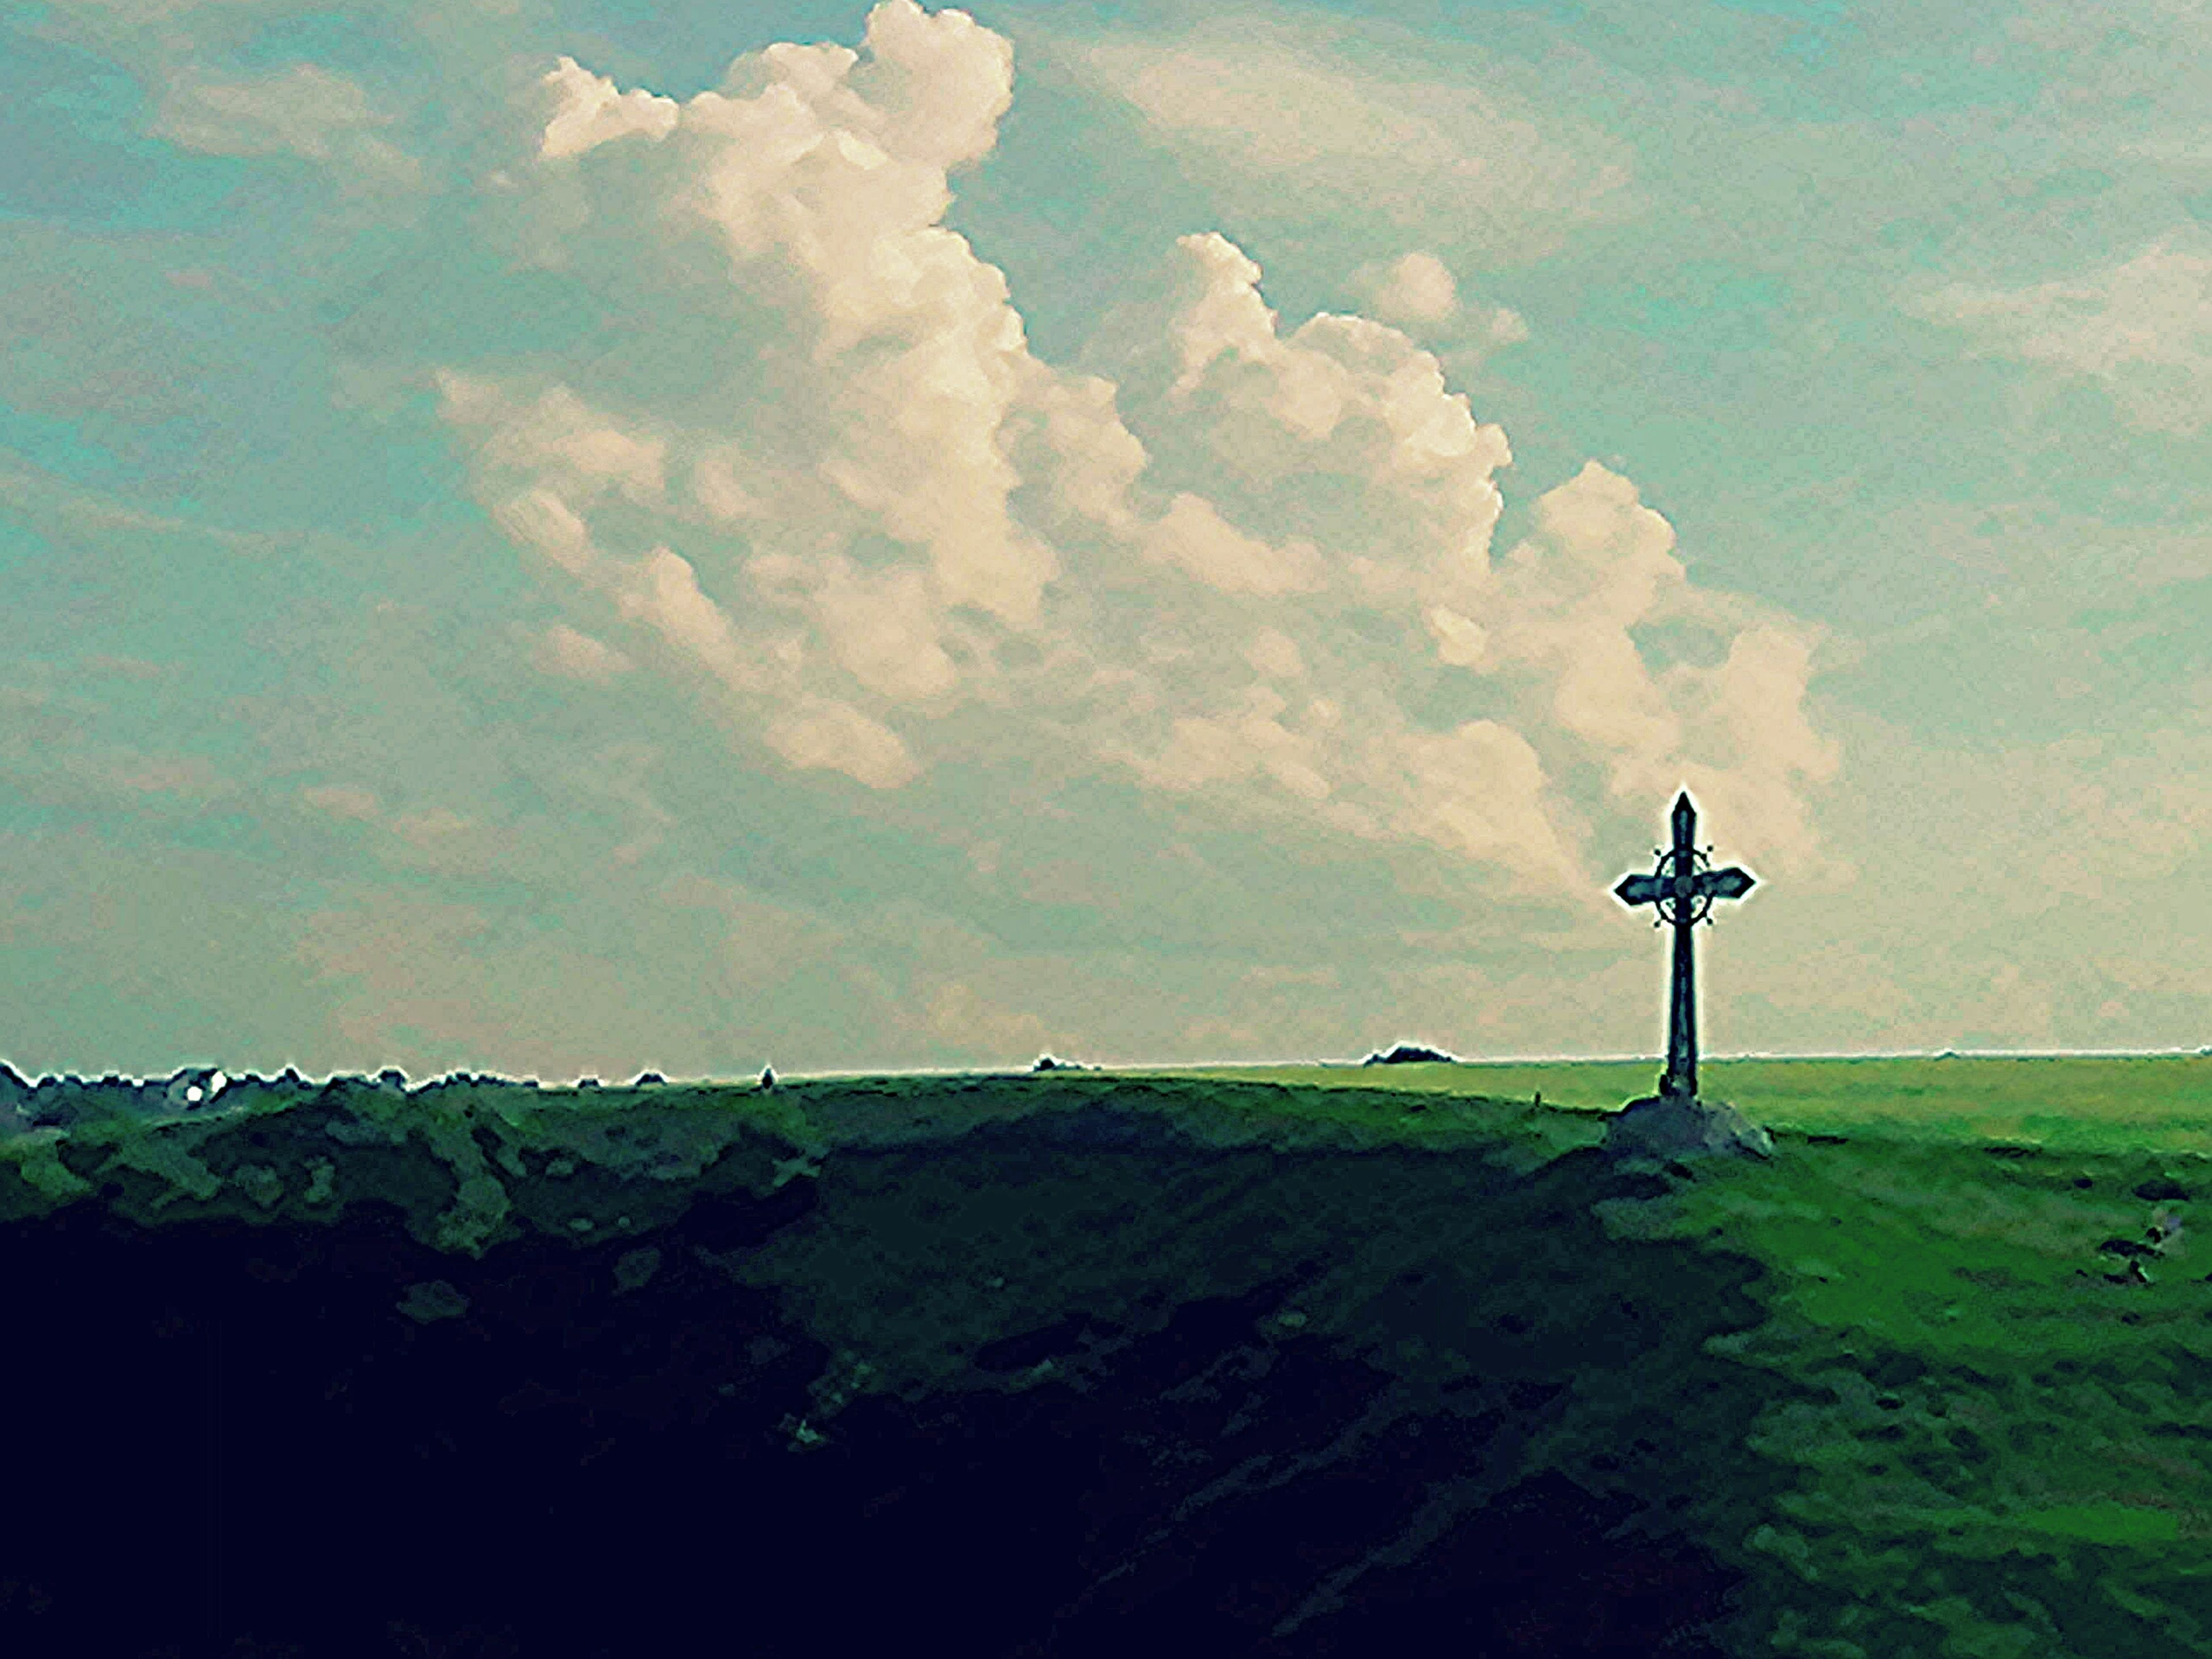 sky, landscape, tranquility, field, tranquil scene, grass, cloud - sky, built structure, scenics, nature, guidance, cross, beauty in nature, architecture, lighthouse, building exterior, cloud, rural scene, green color, no people